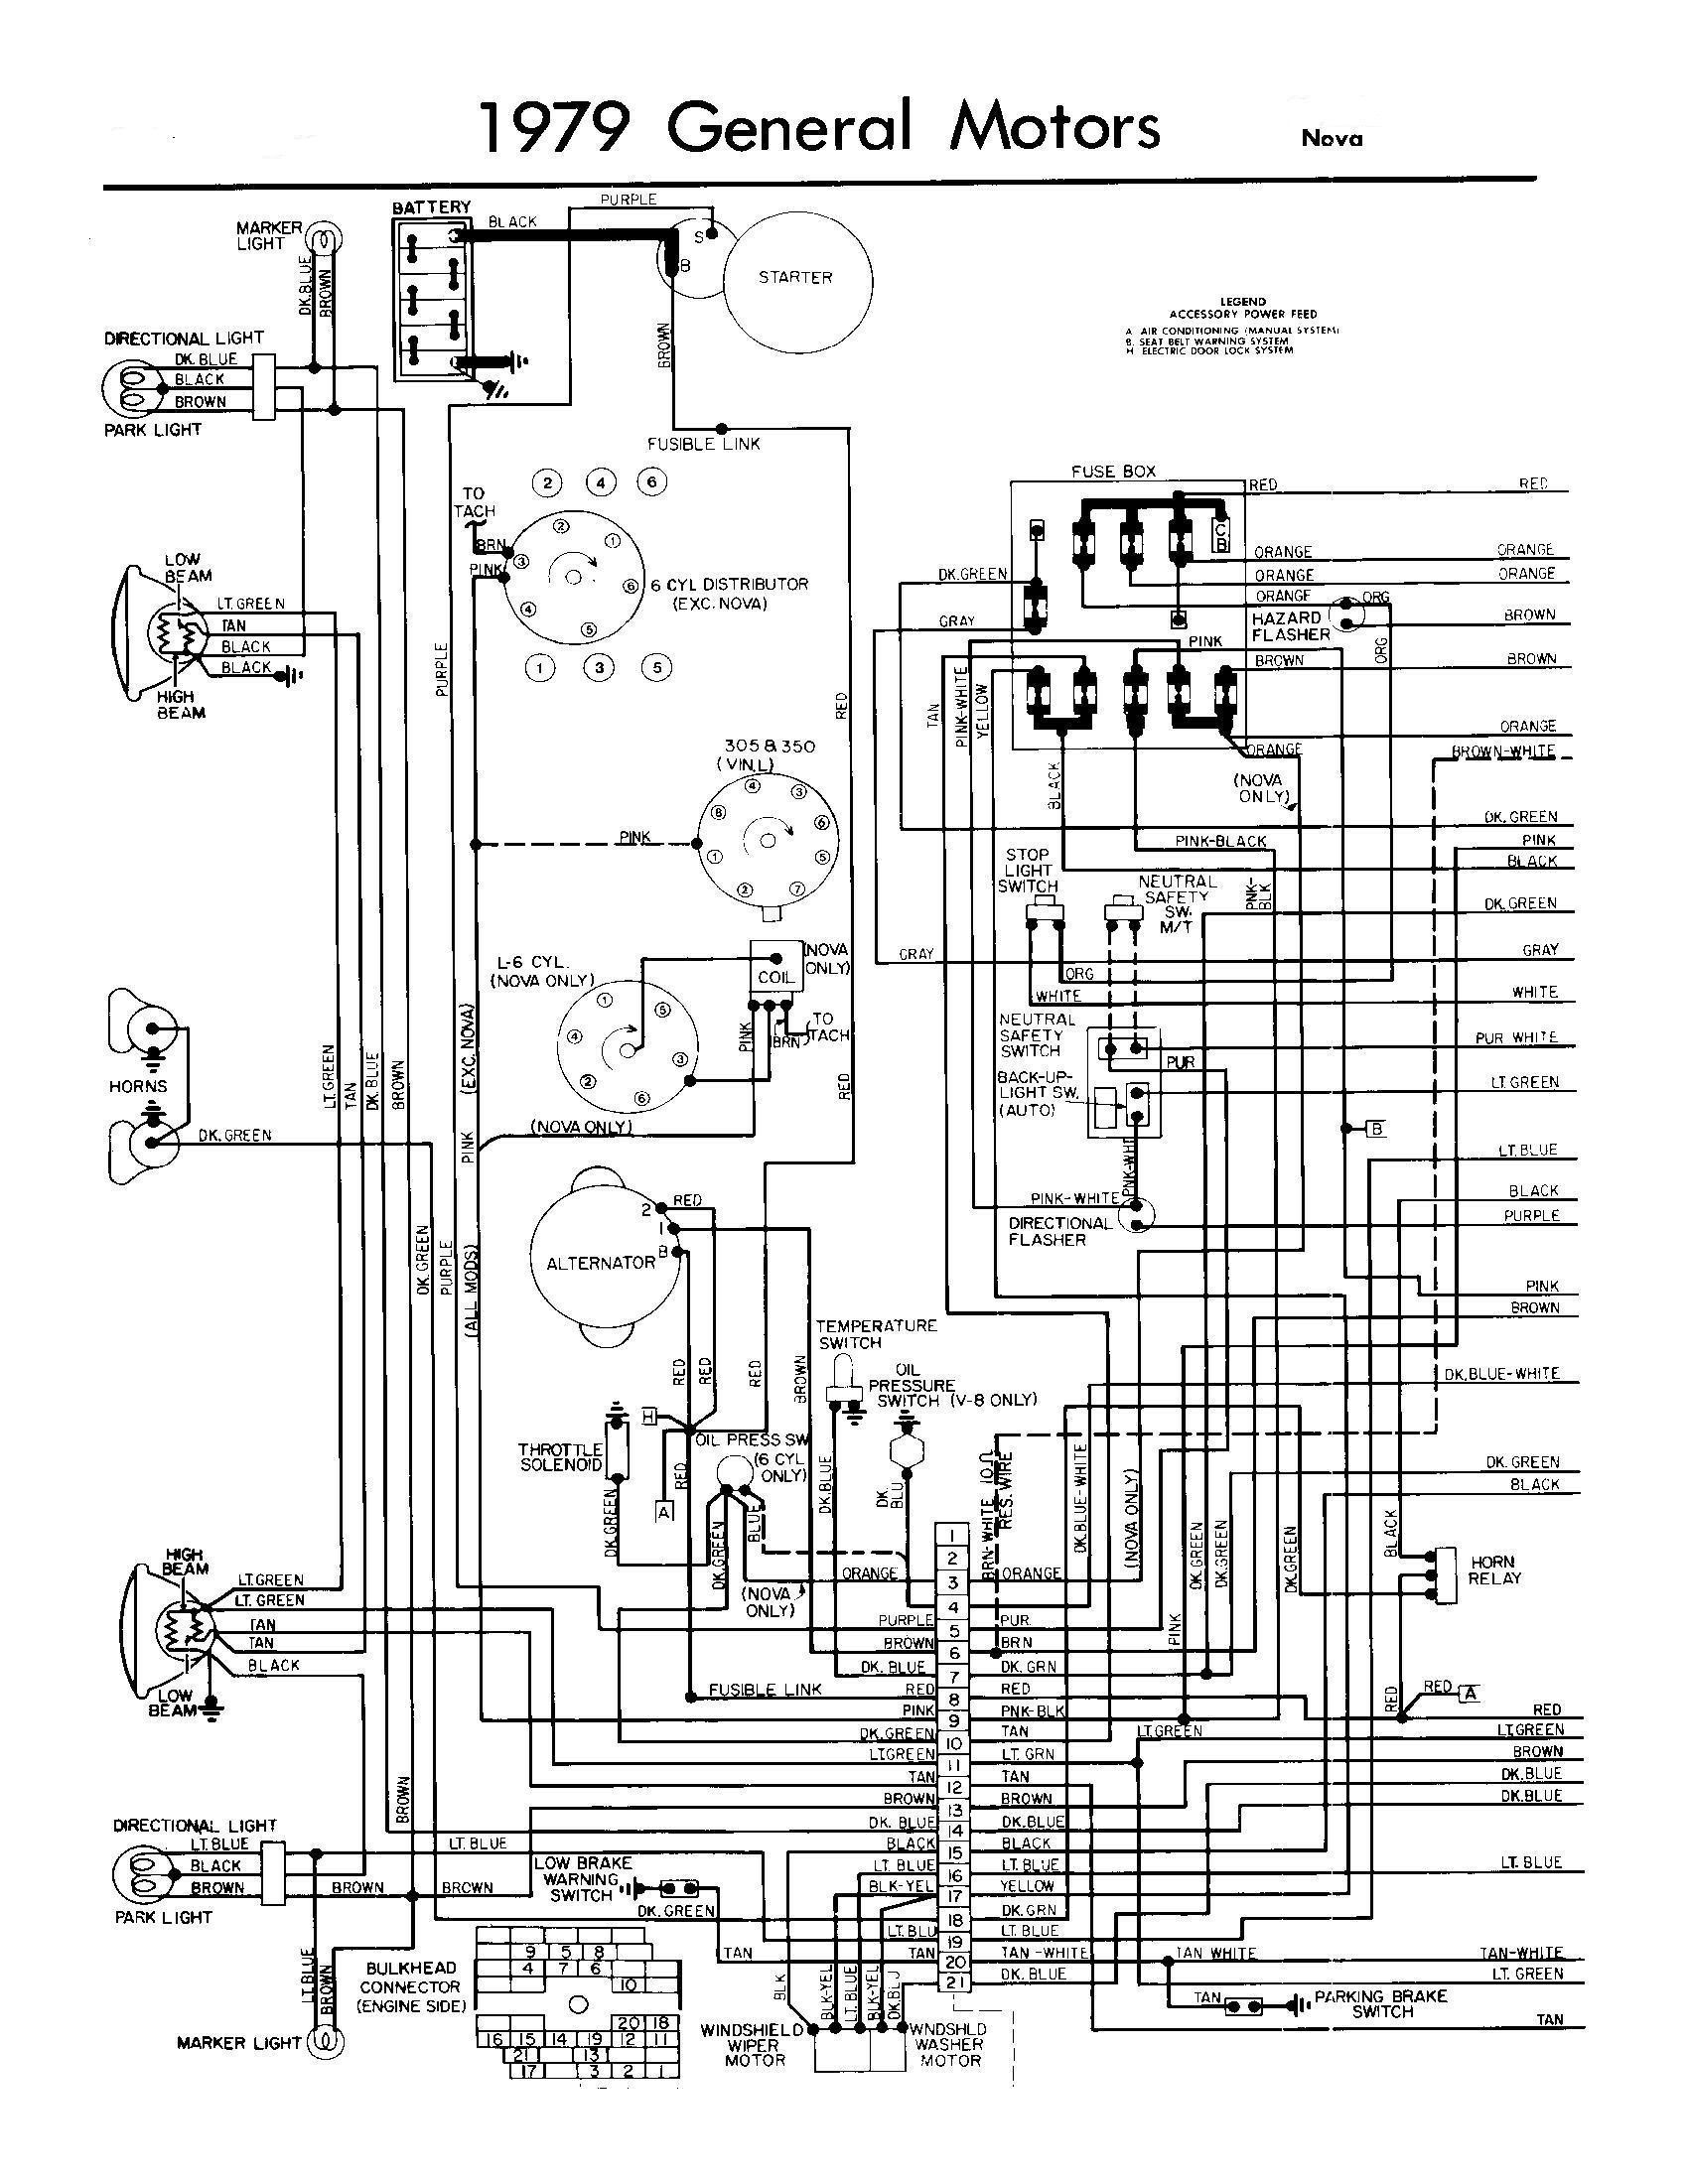 Diagram Of Car Components Vehicle theft Detection Notification and ...